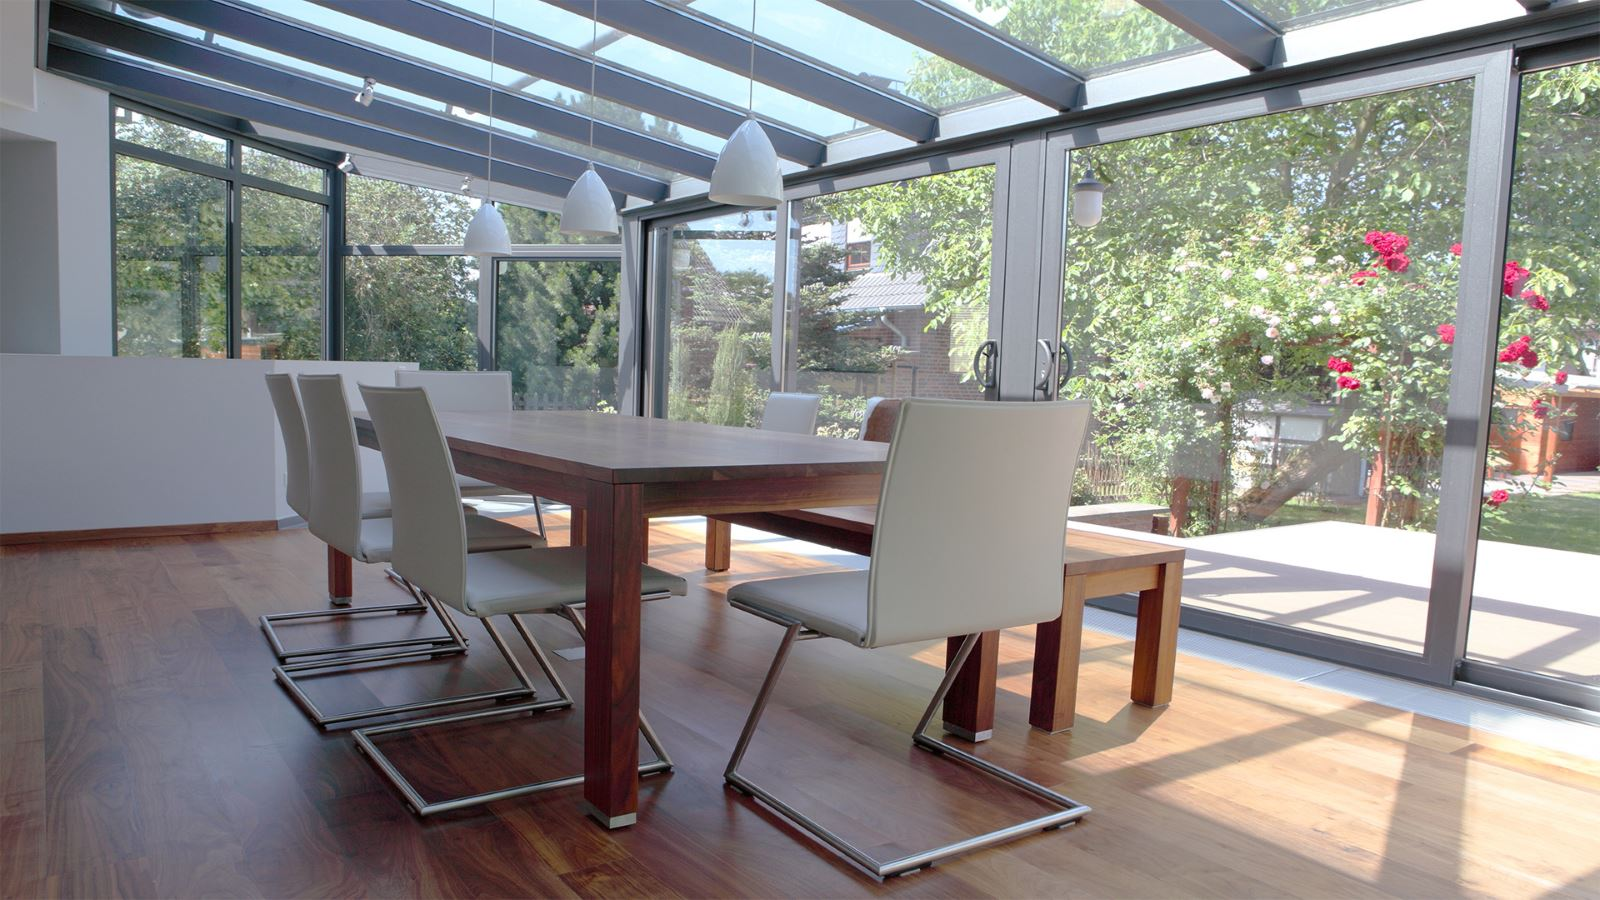 Commercial Window Film in Conservatory